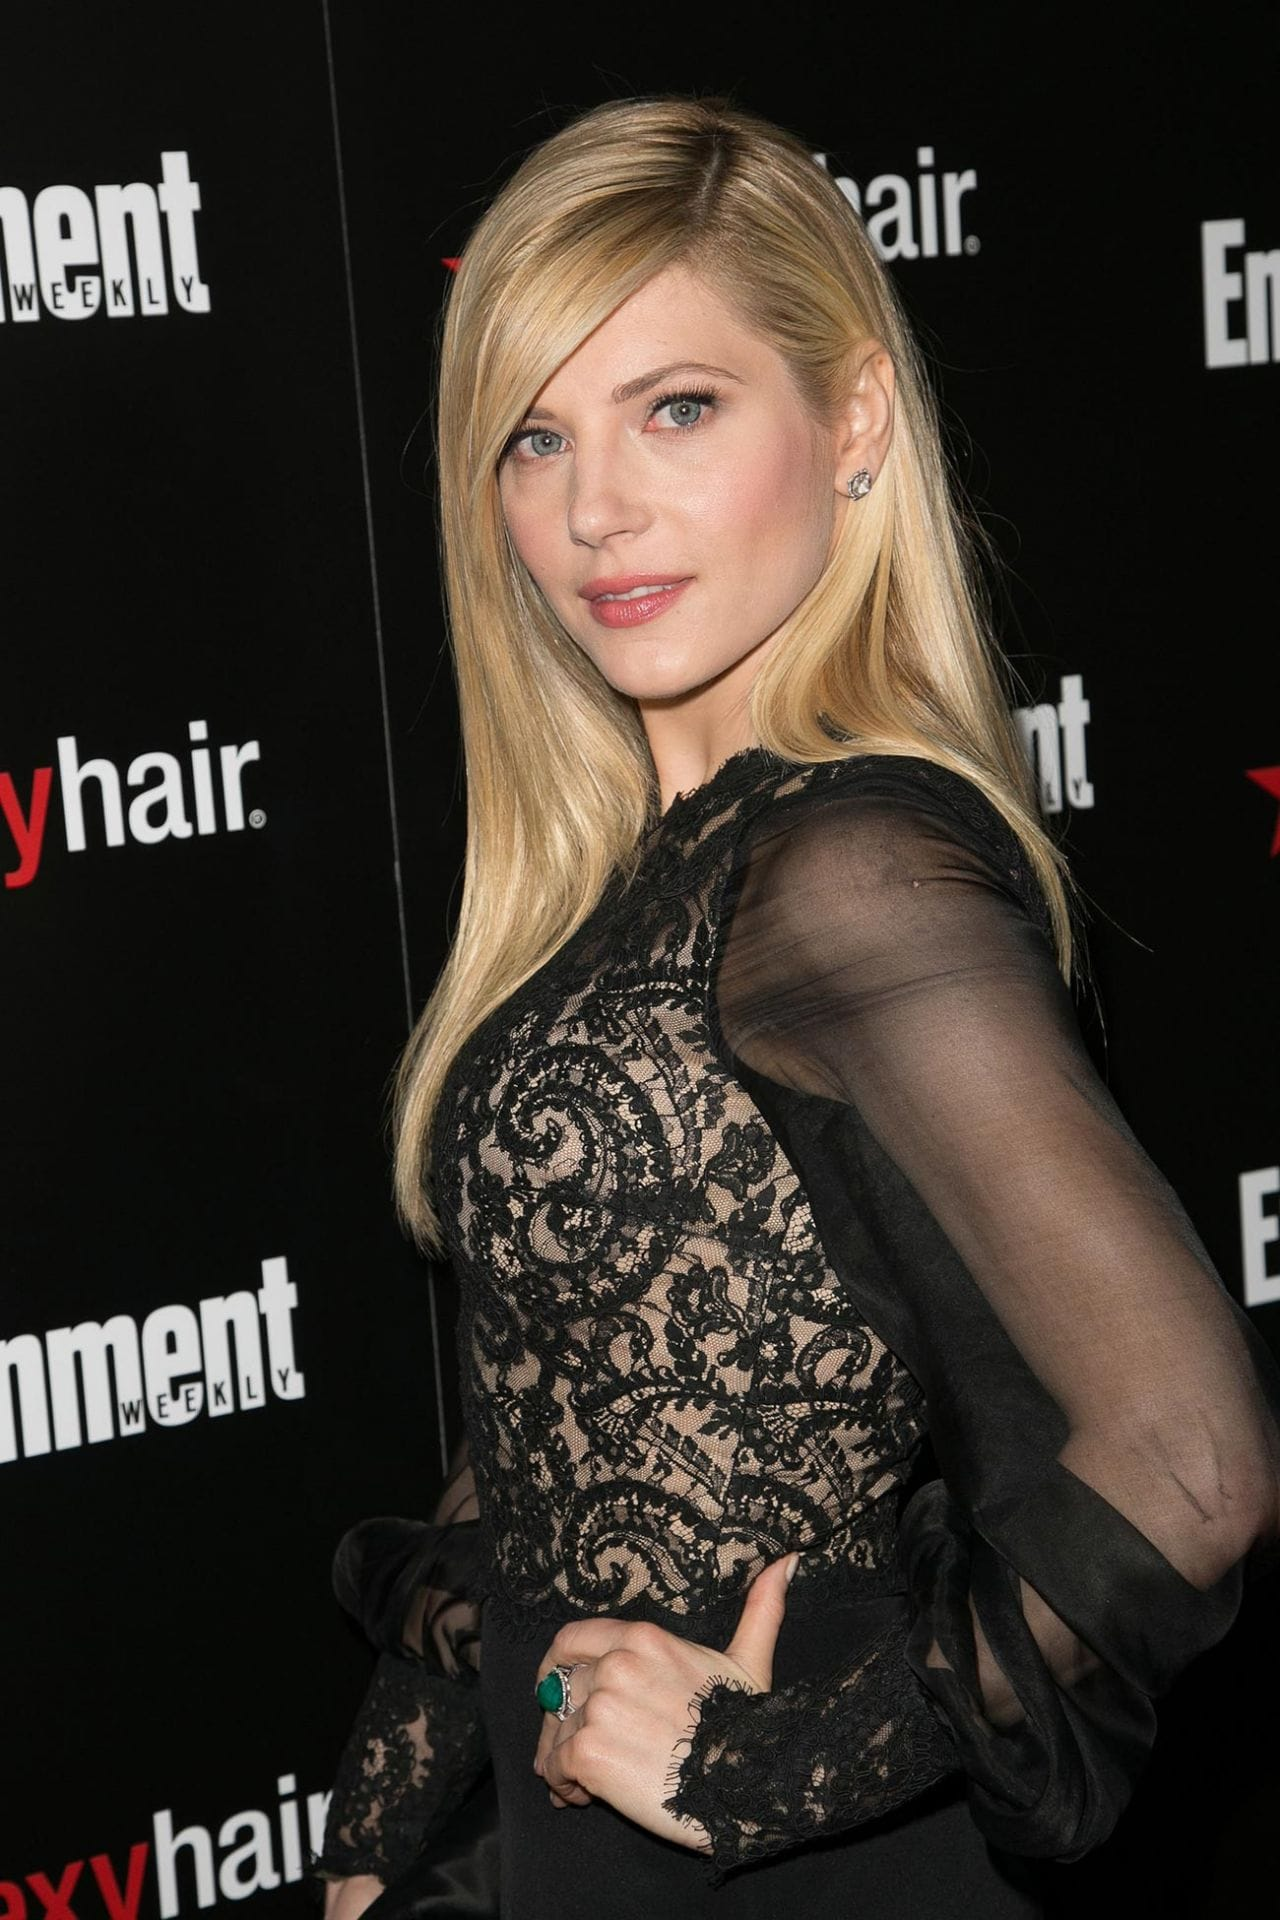 Katheryn Winnick For mobile